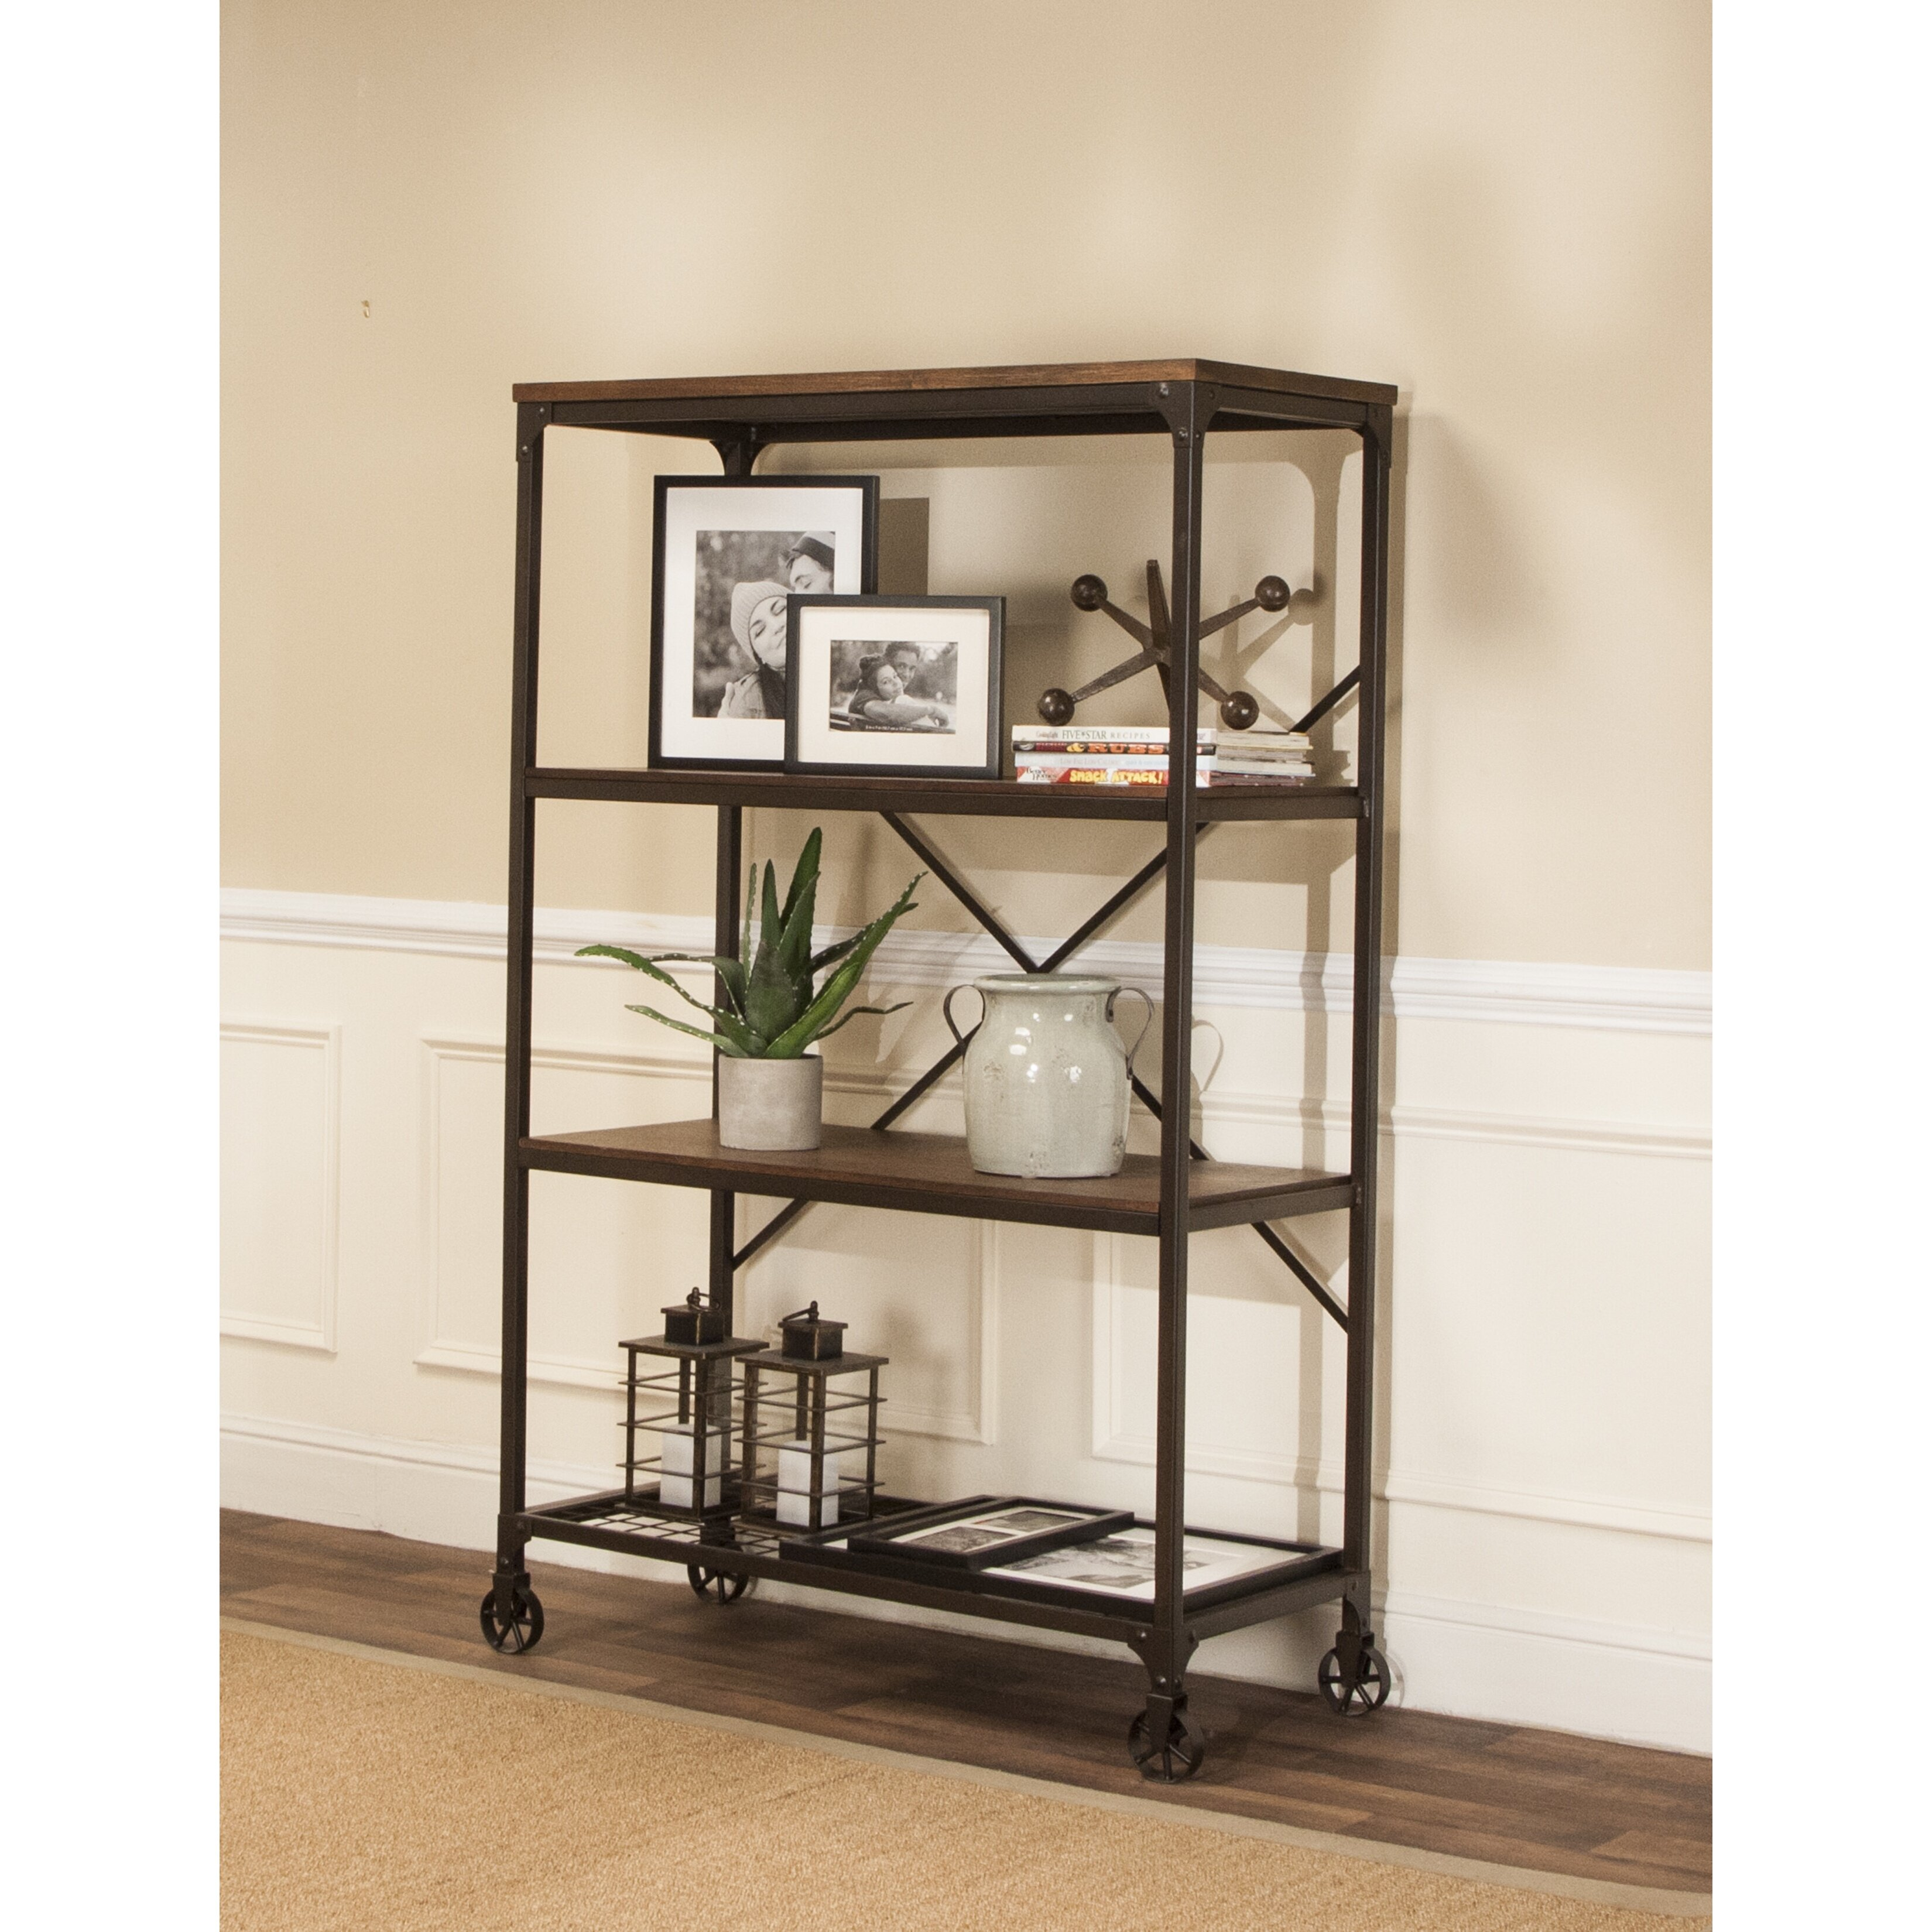 trent austin design chelles 63 etagere bookcase wayfair. Black Bedroom Furniture Sets. Home Design Ideas